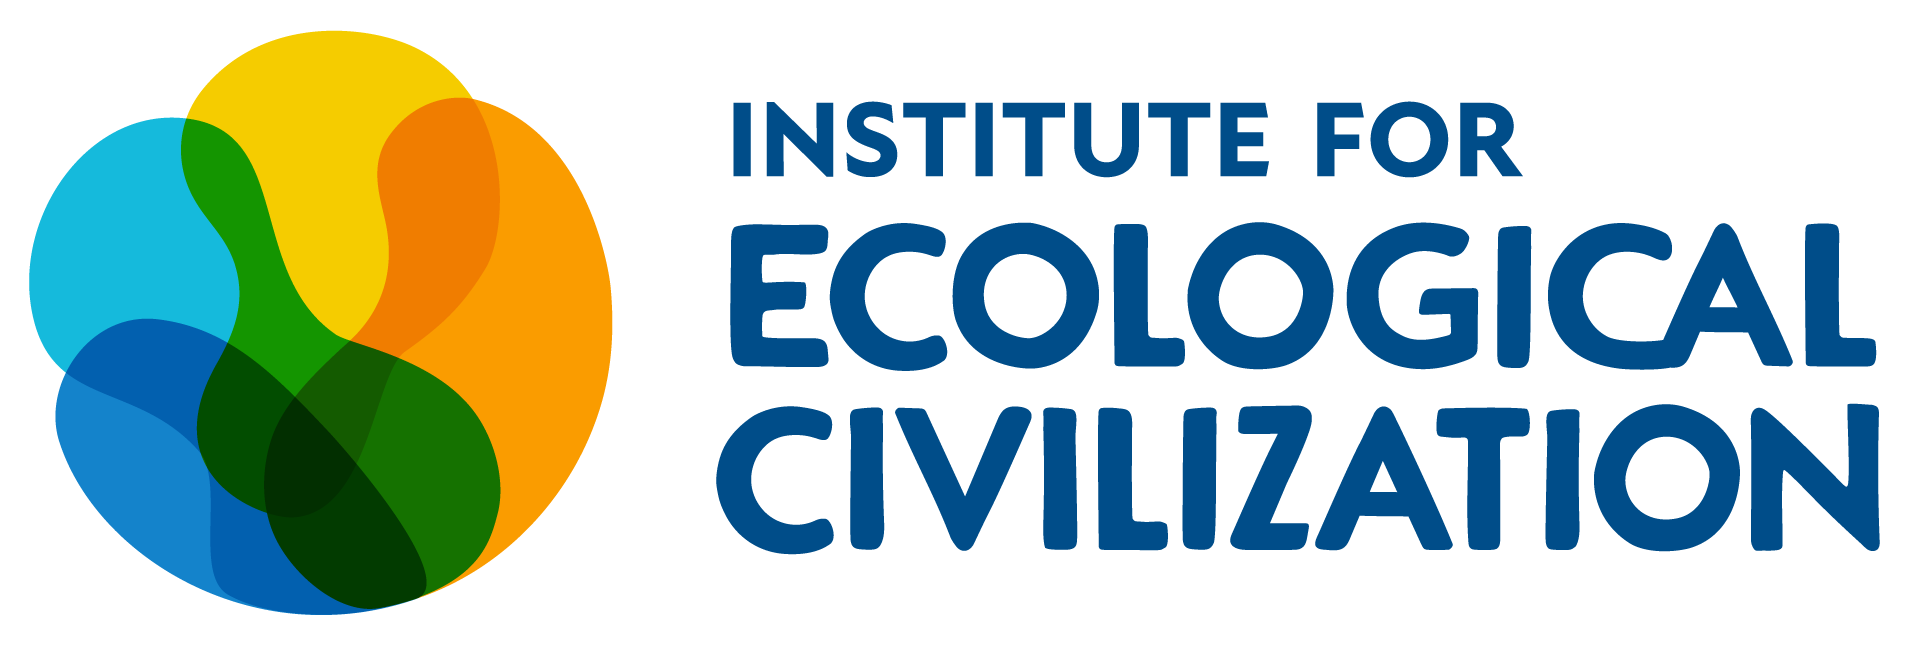 EcoCivDev - Institute for Ecological Civilization